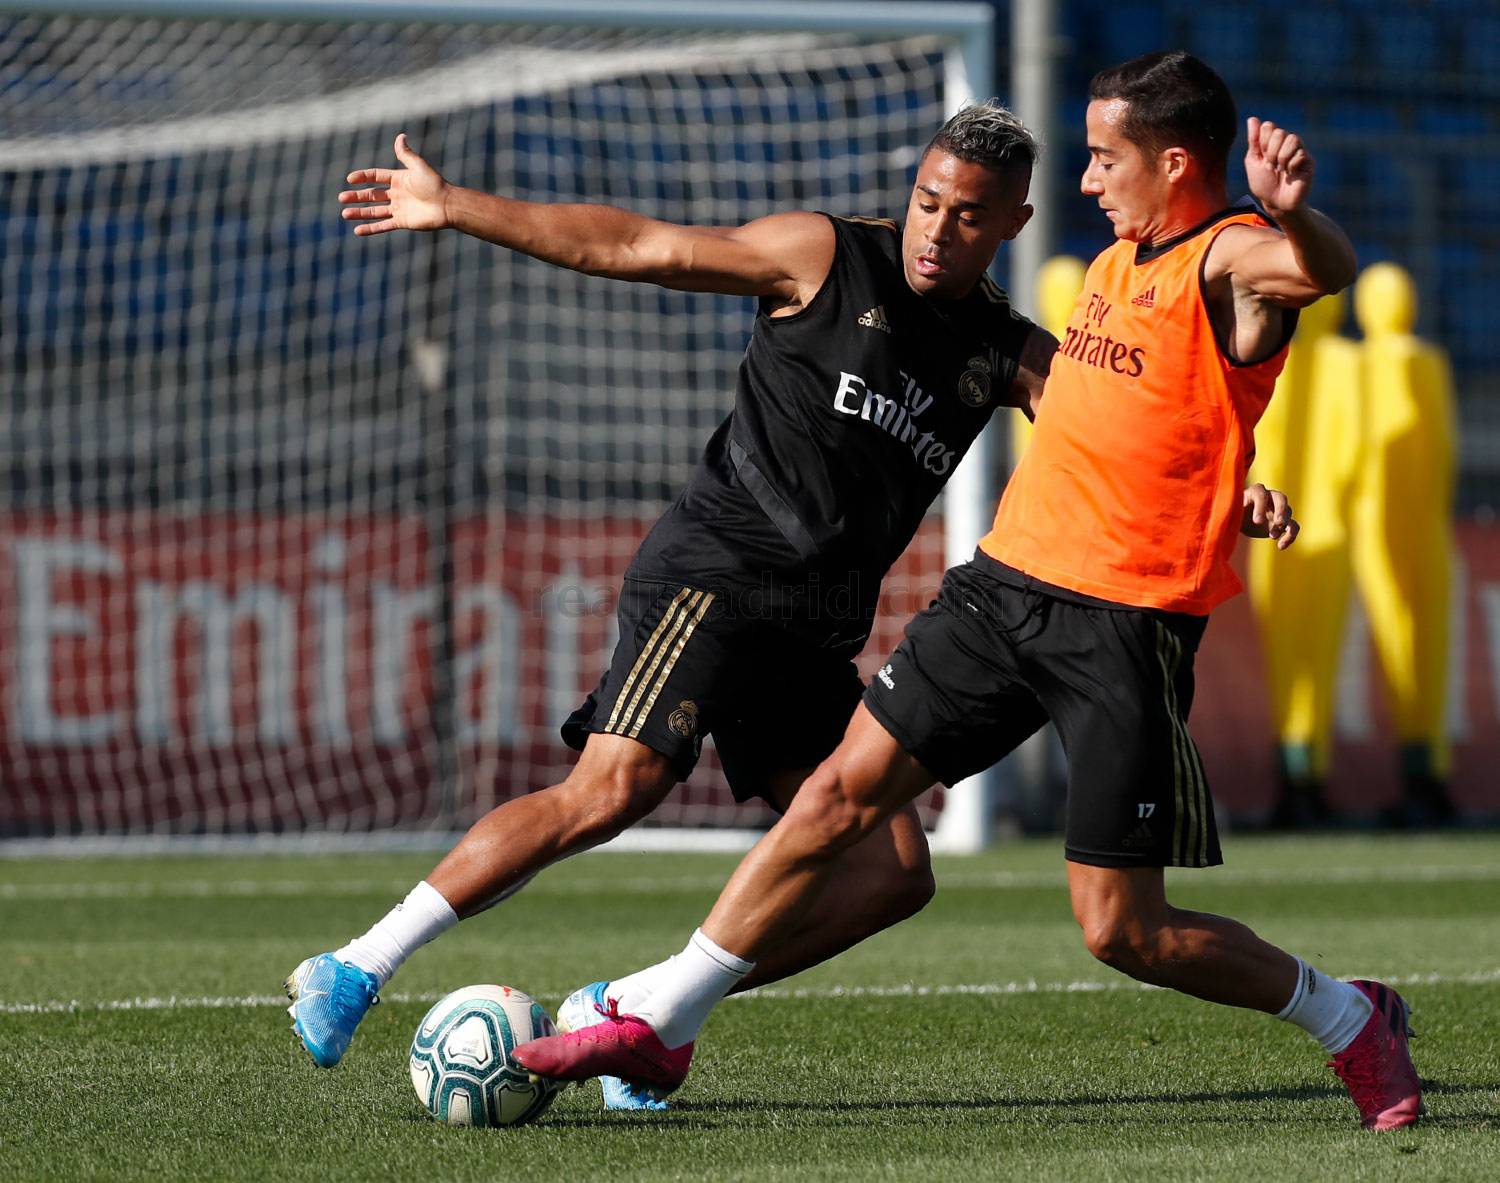 Real Madrid - Entrenamiento del Real Madrid  - 28-08-2019